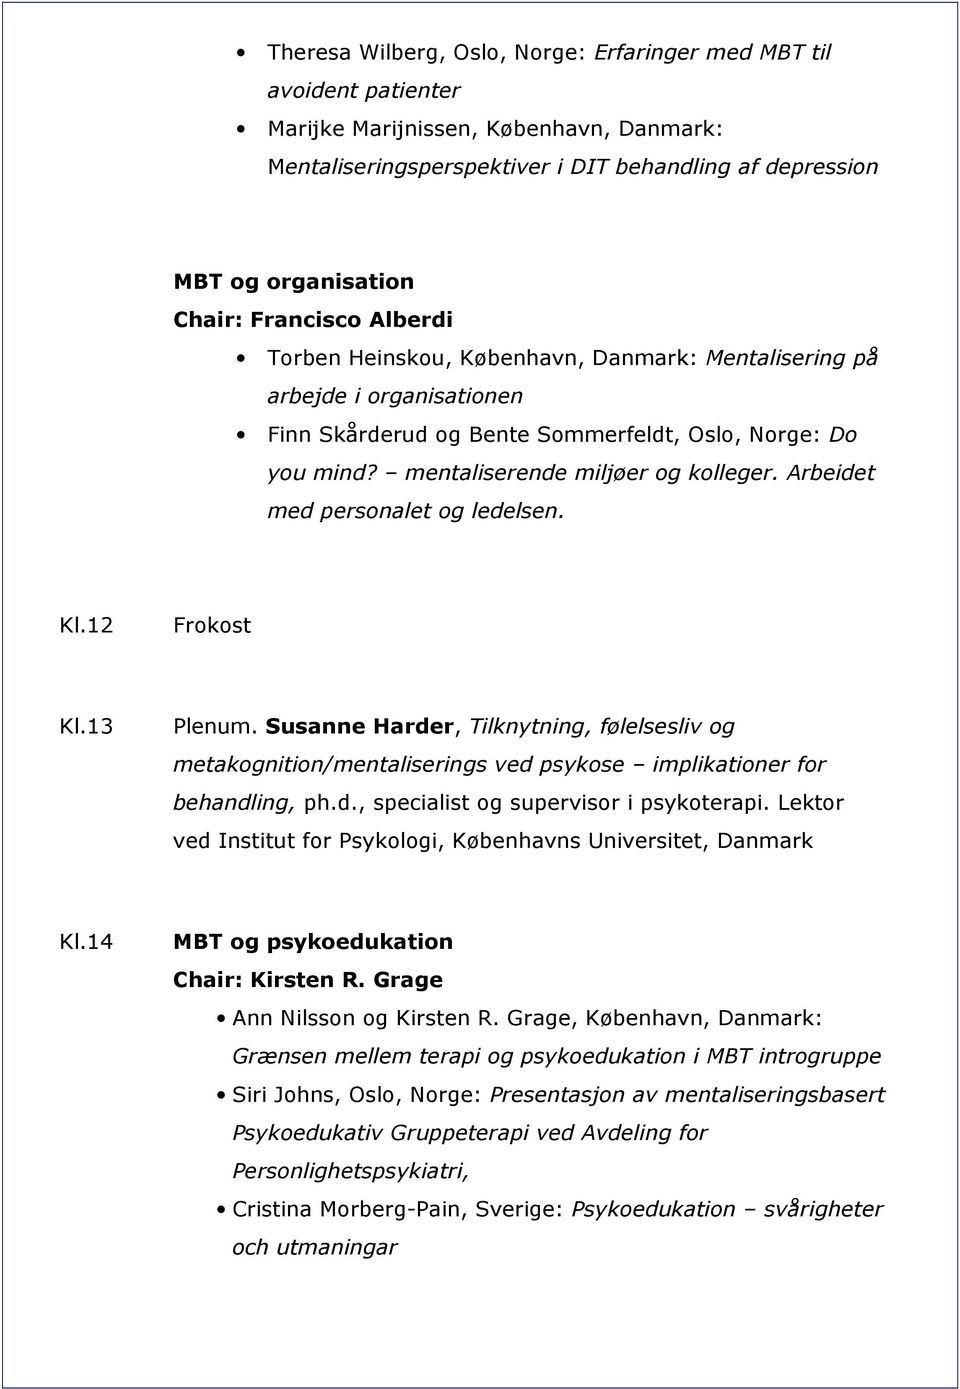 Arbeidet med personalet og ledelsen. Kl.12 Frokost Kl.13 Plenum. Susanne Harder, Tilknytning, følelsesliv og metakognition/mentaliserings ved psykose implikationer for behandling, ph.d., specialist og supervisor i psykoterapi.